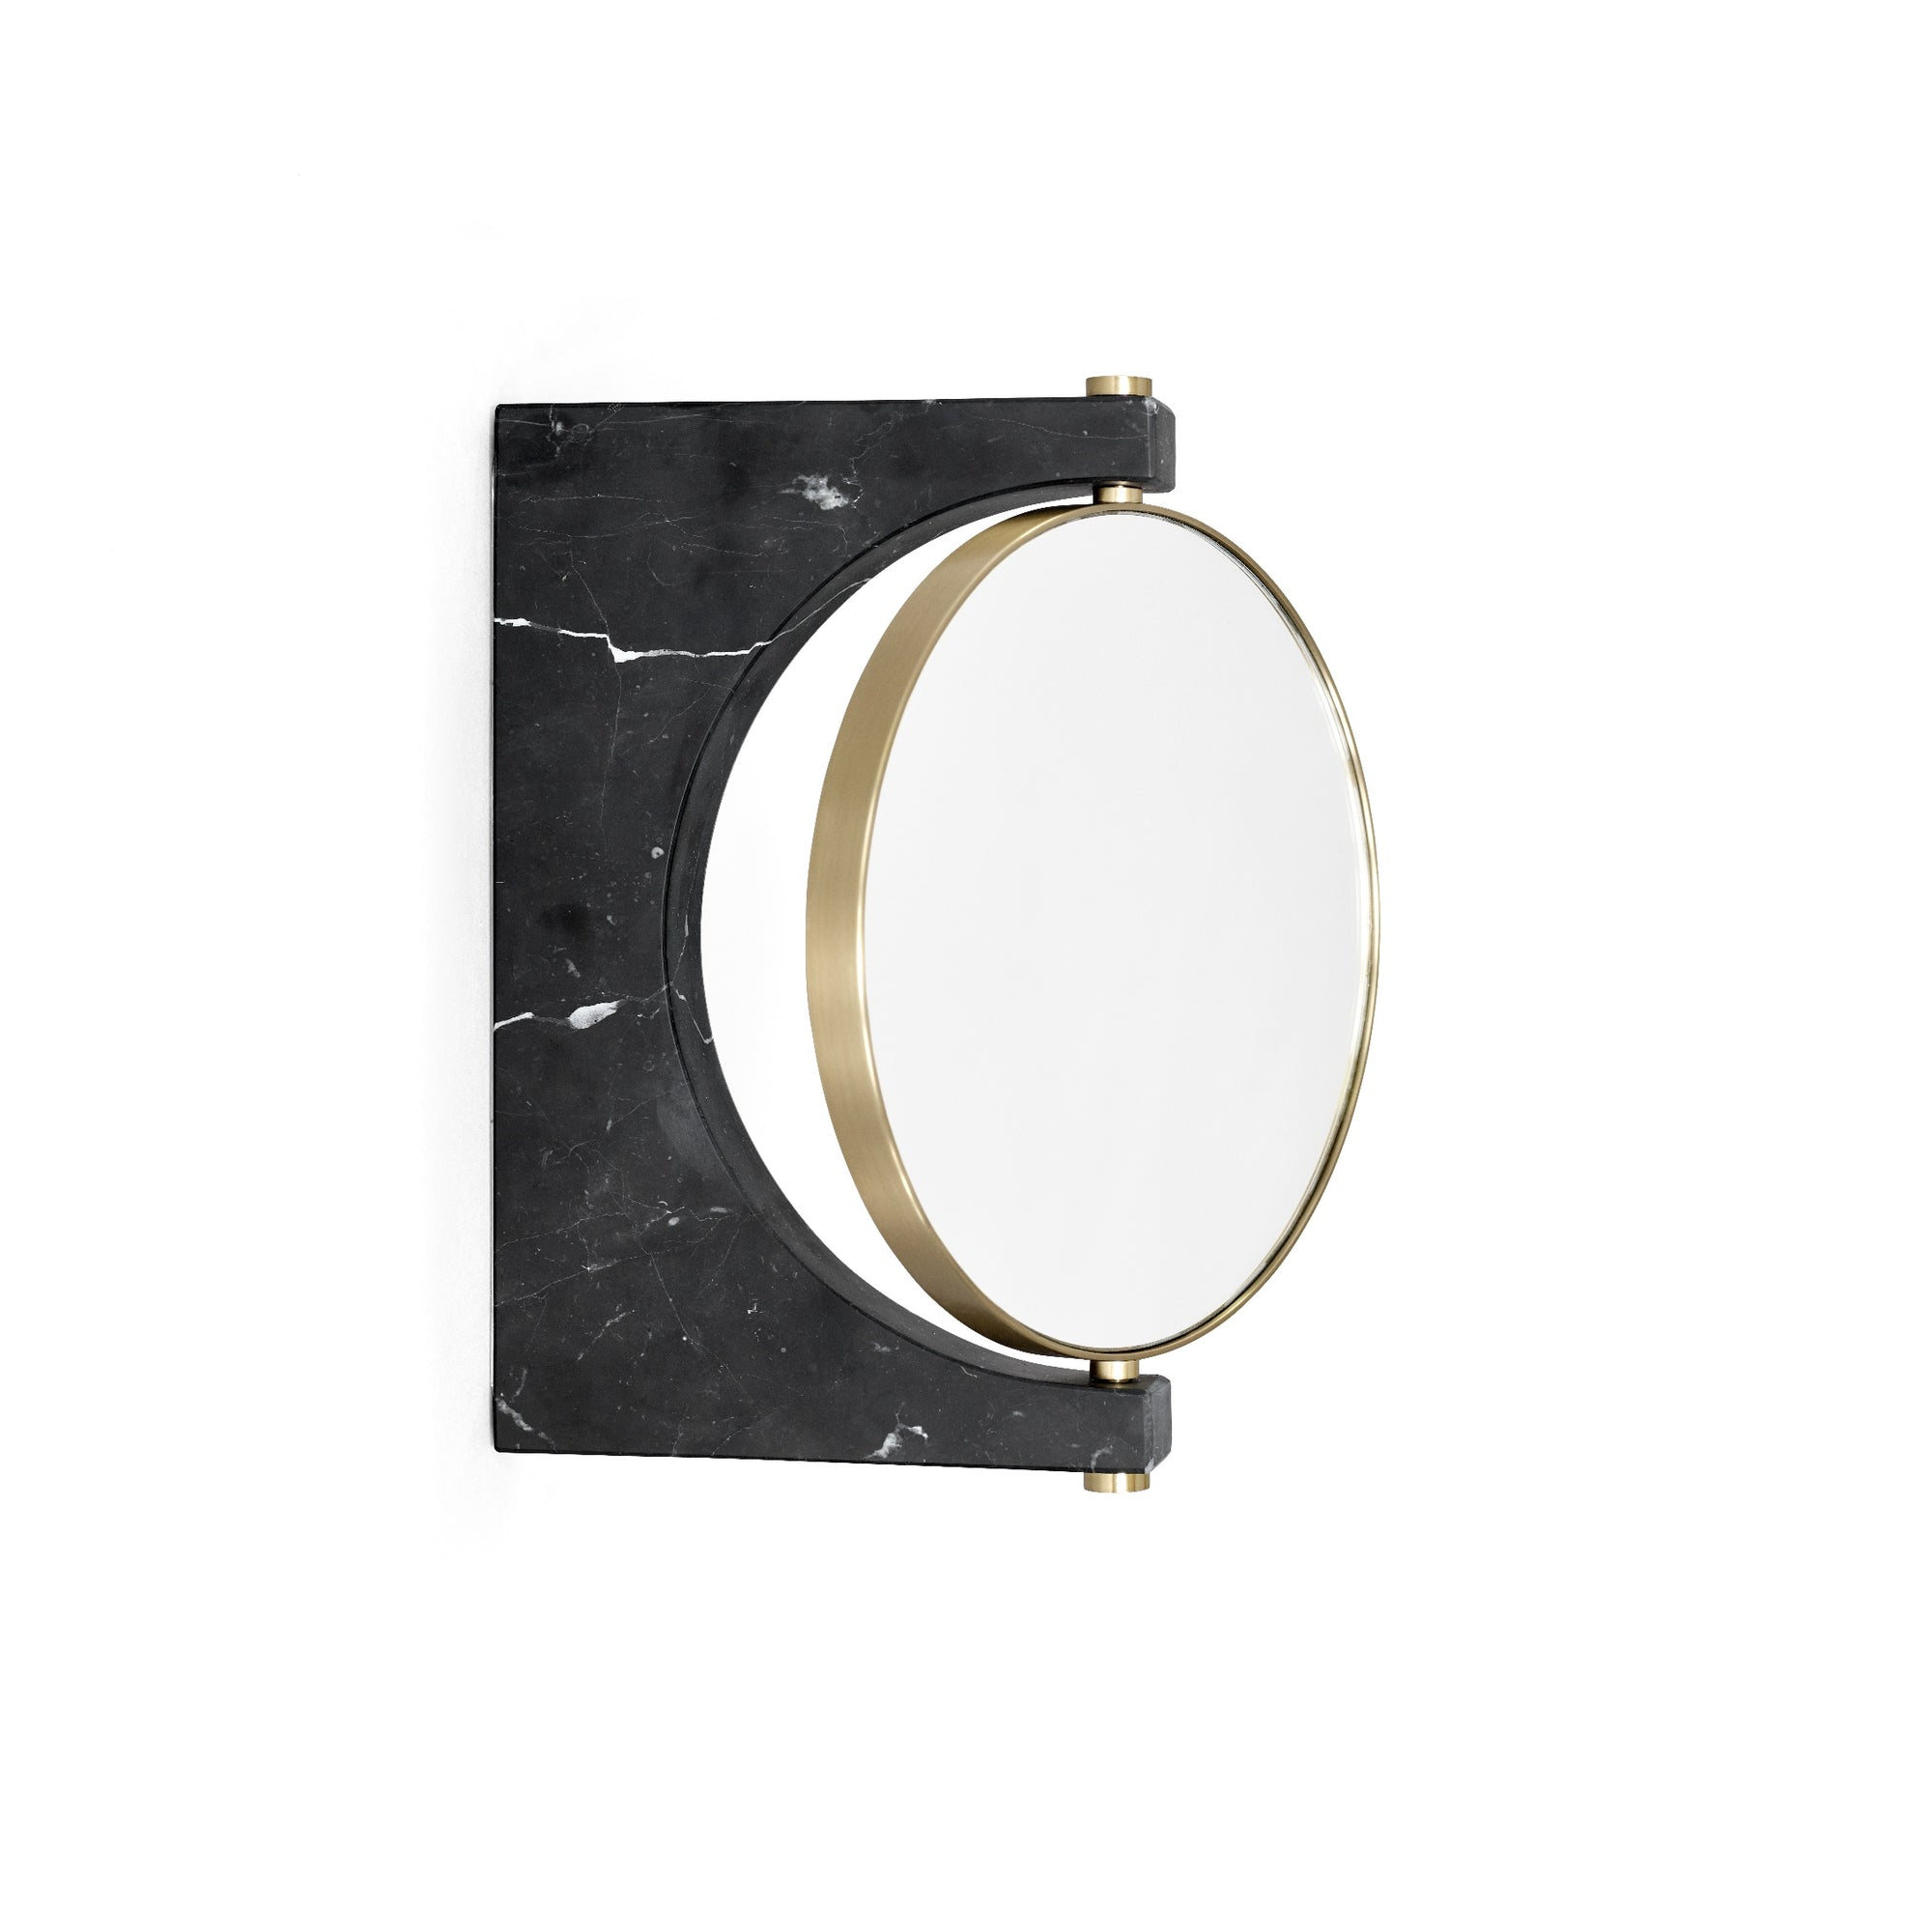 Pepe Marble Mirror, Wall- Brass/Black